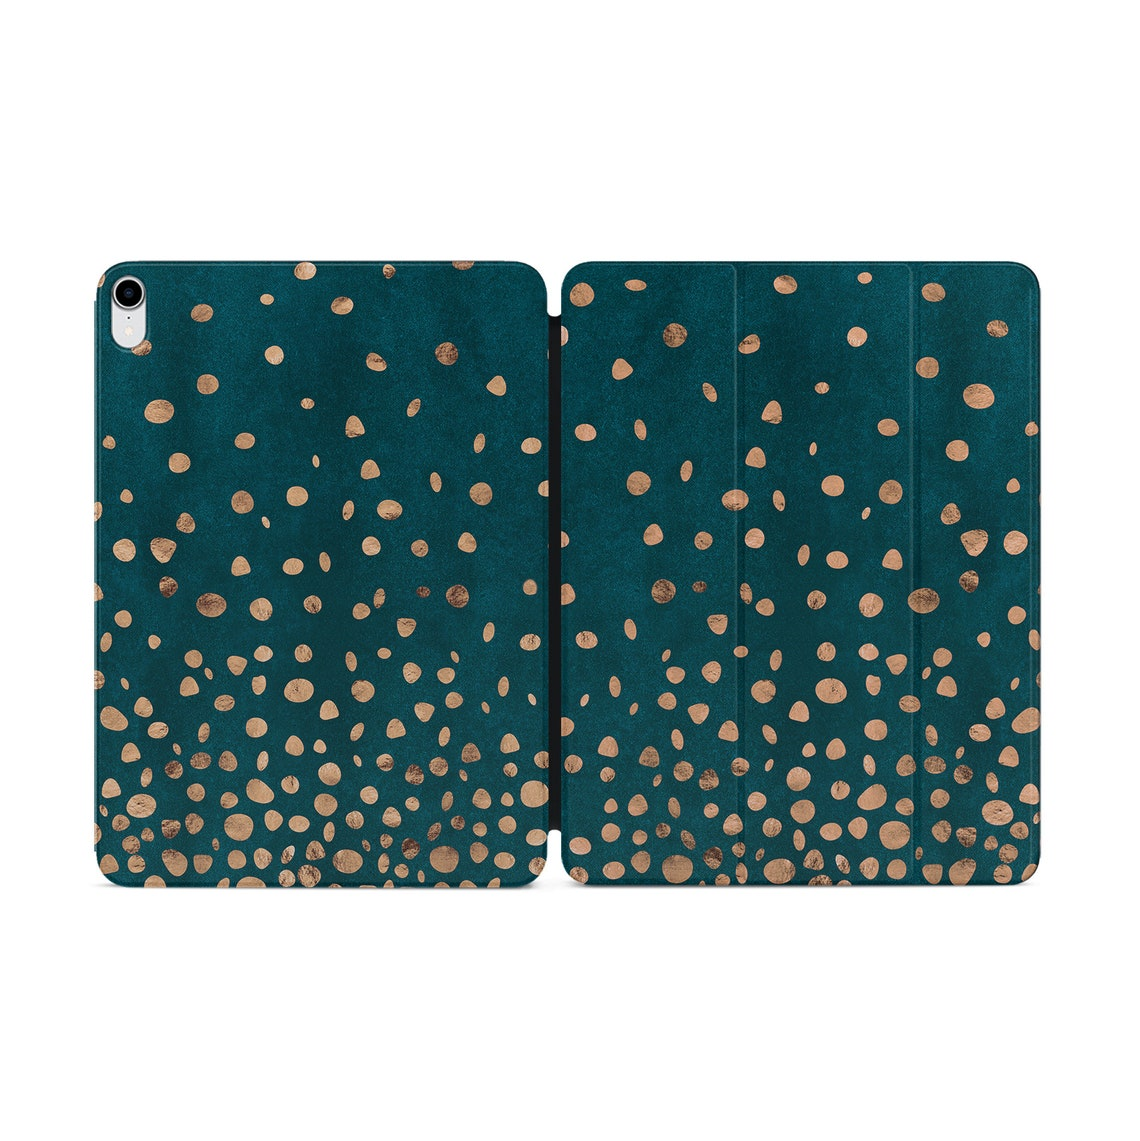 Polka Dot iPad Pro 12.9 Case Golden Dots iPad 2018 iPad 11 Smart Folio iPad Pro 12.9 Magnetic Case iPad 11.4 Case With Smart Cover YZ5221